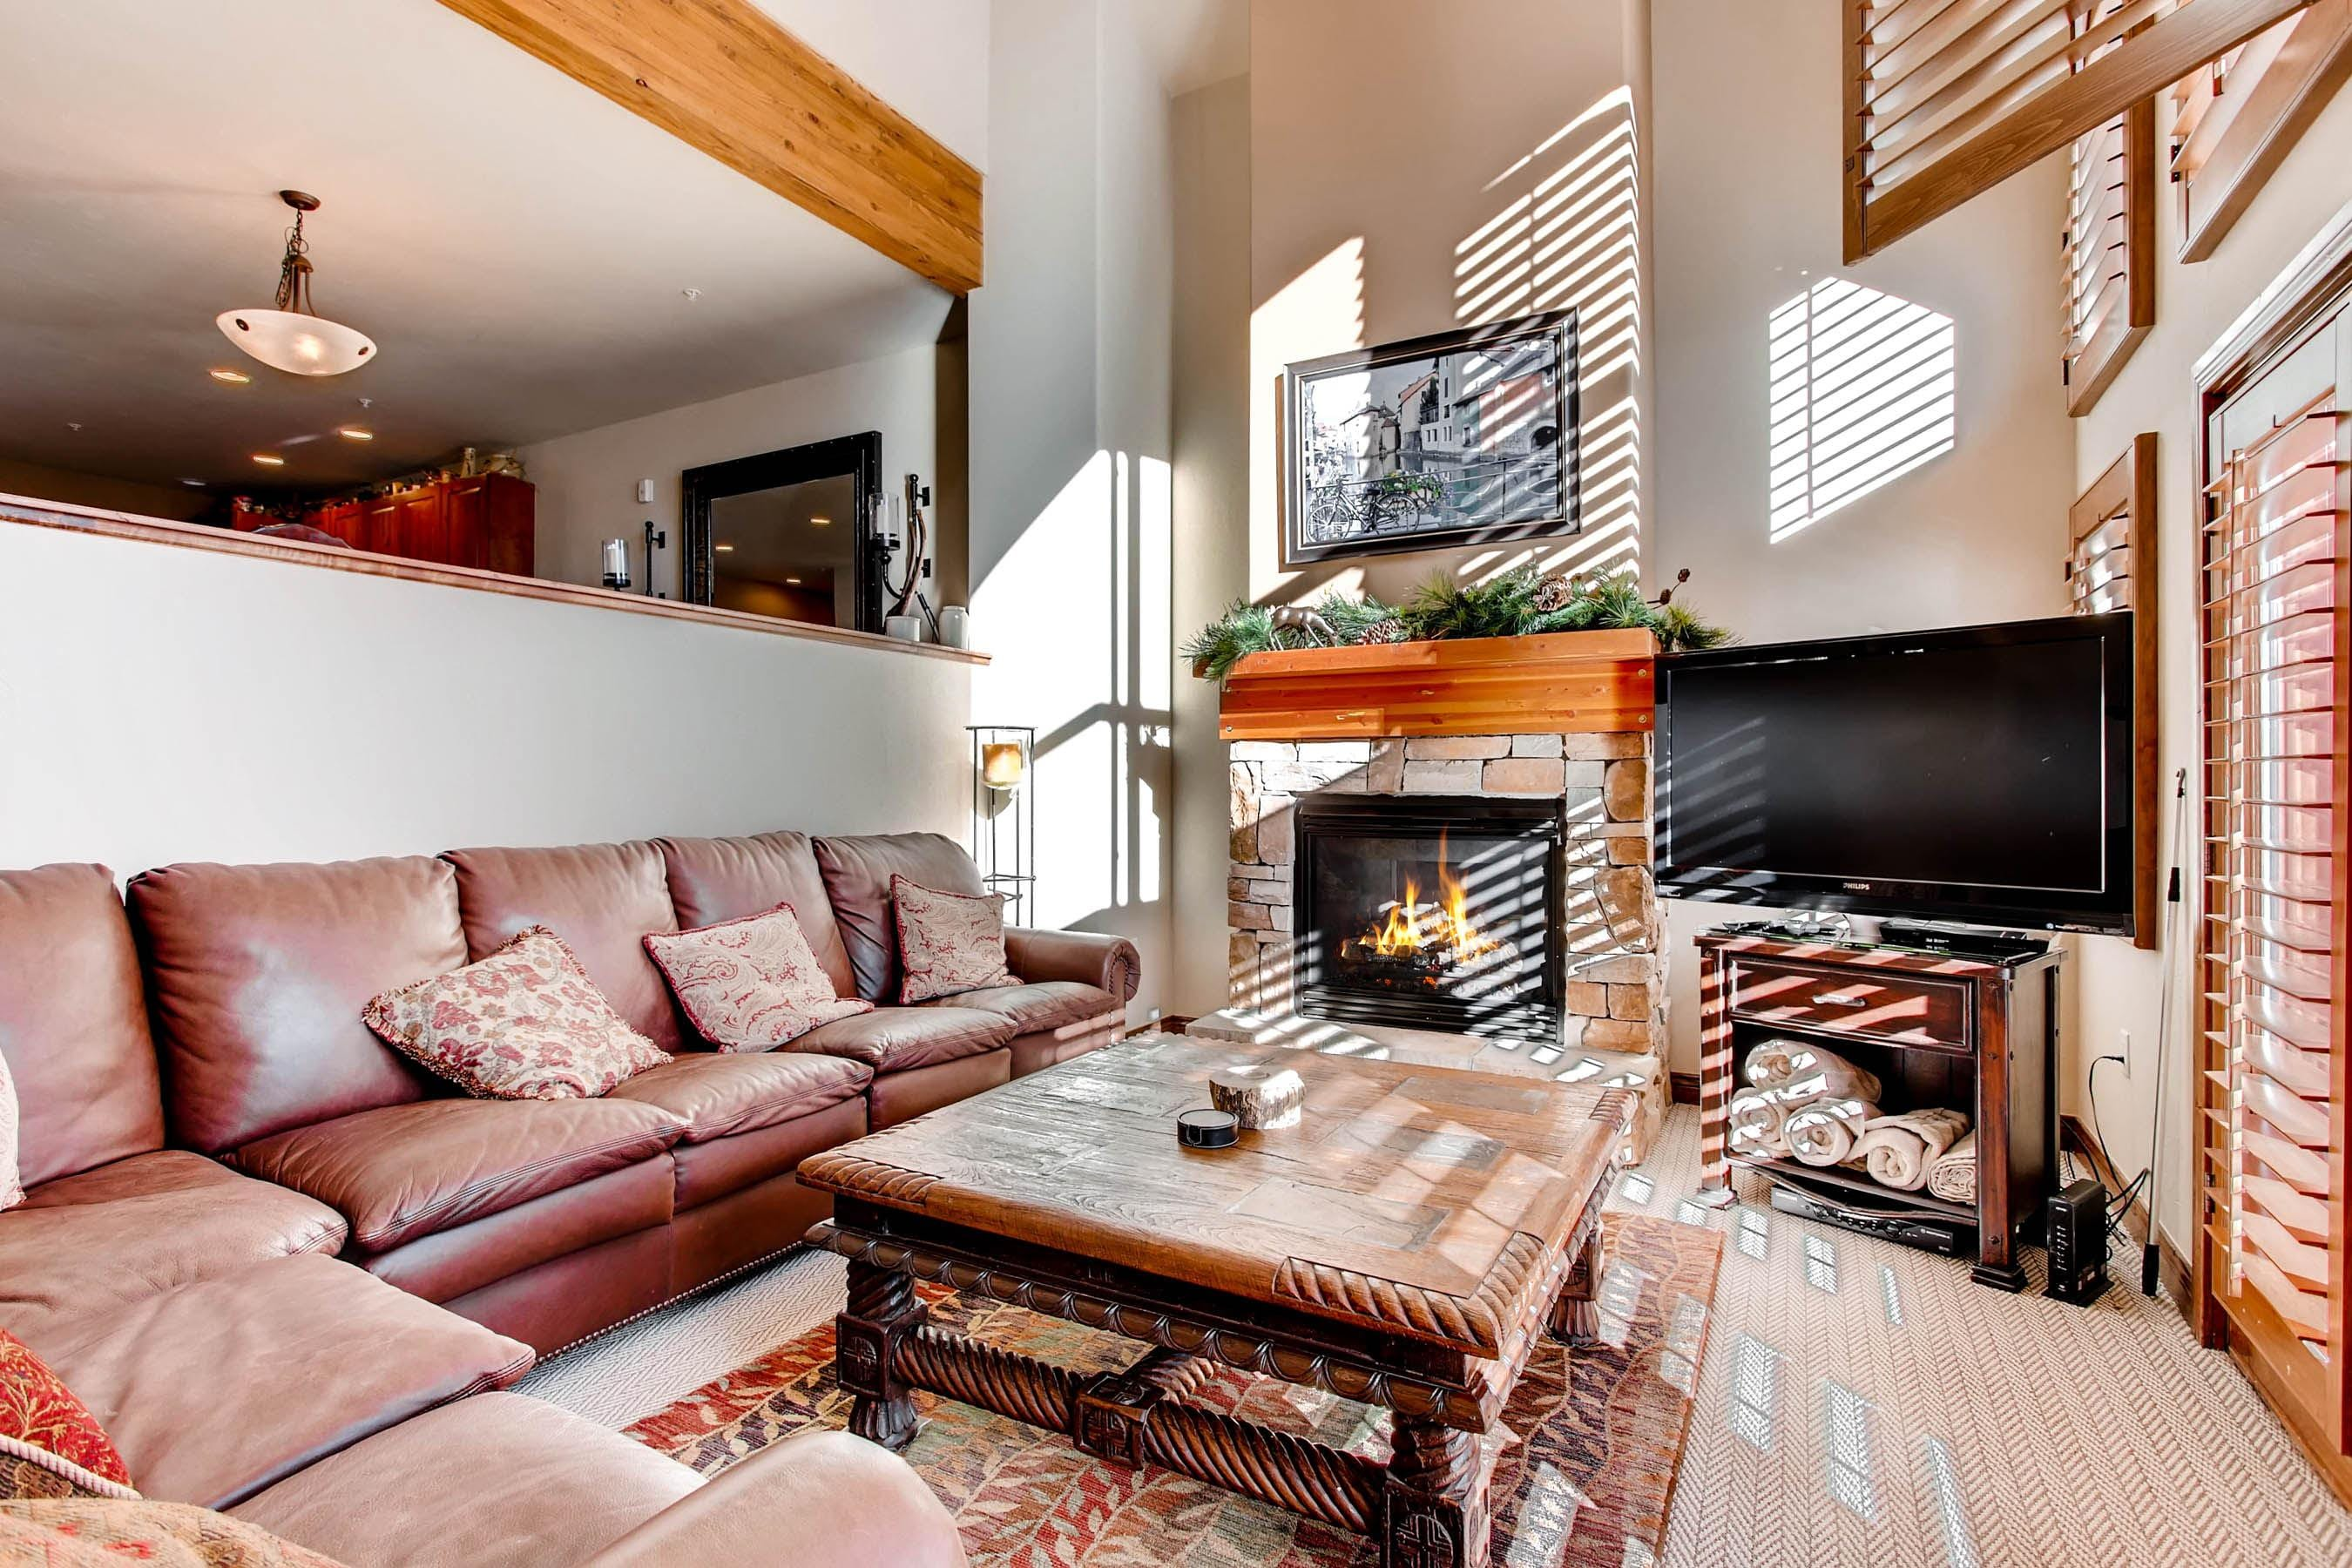 When the snow is blowing, gather in the cozy sunken living room with a fire blazing in the stone fireplace